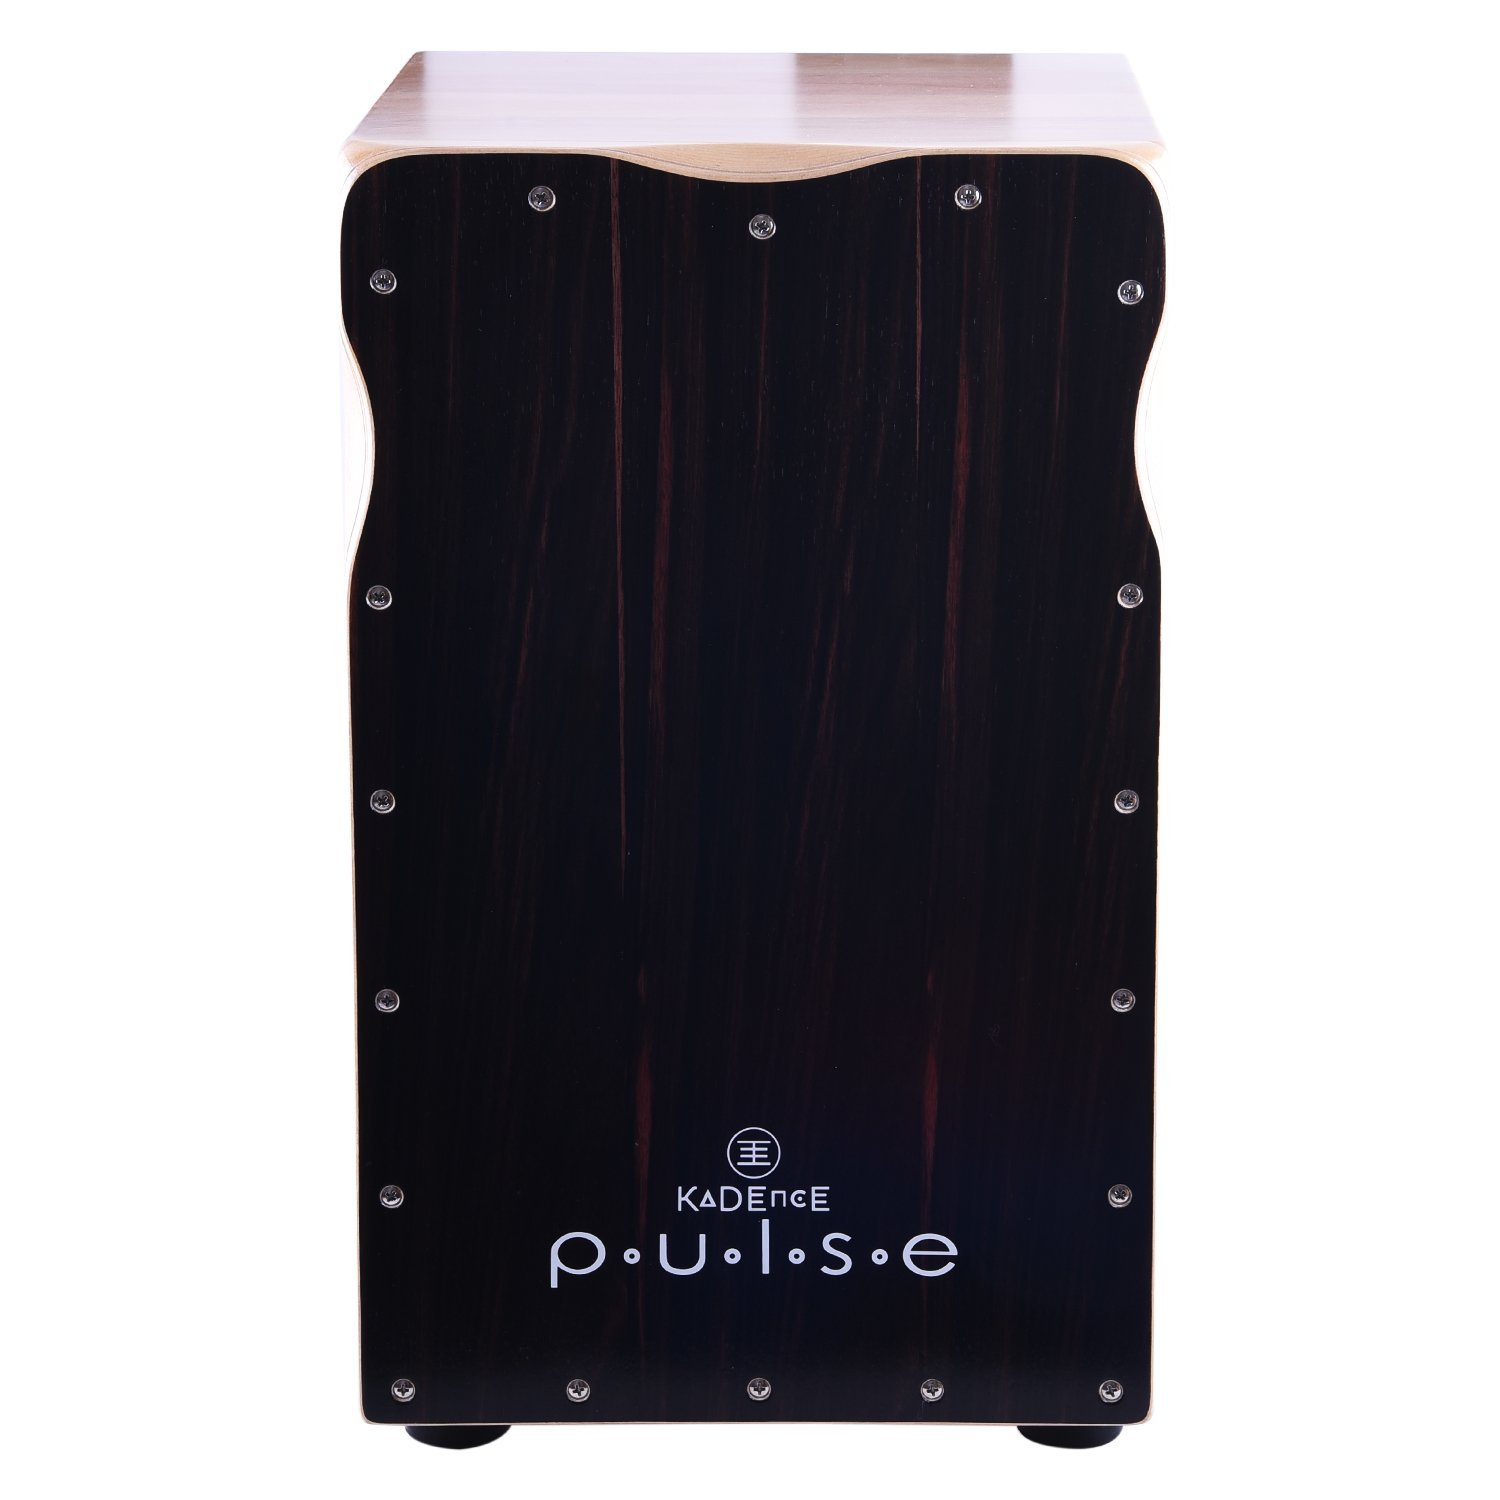 Kadence CL98 Pulse Cajon